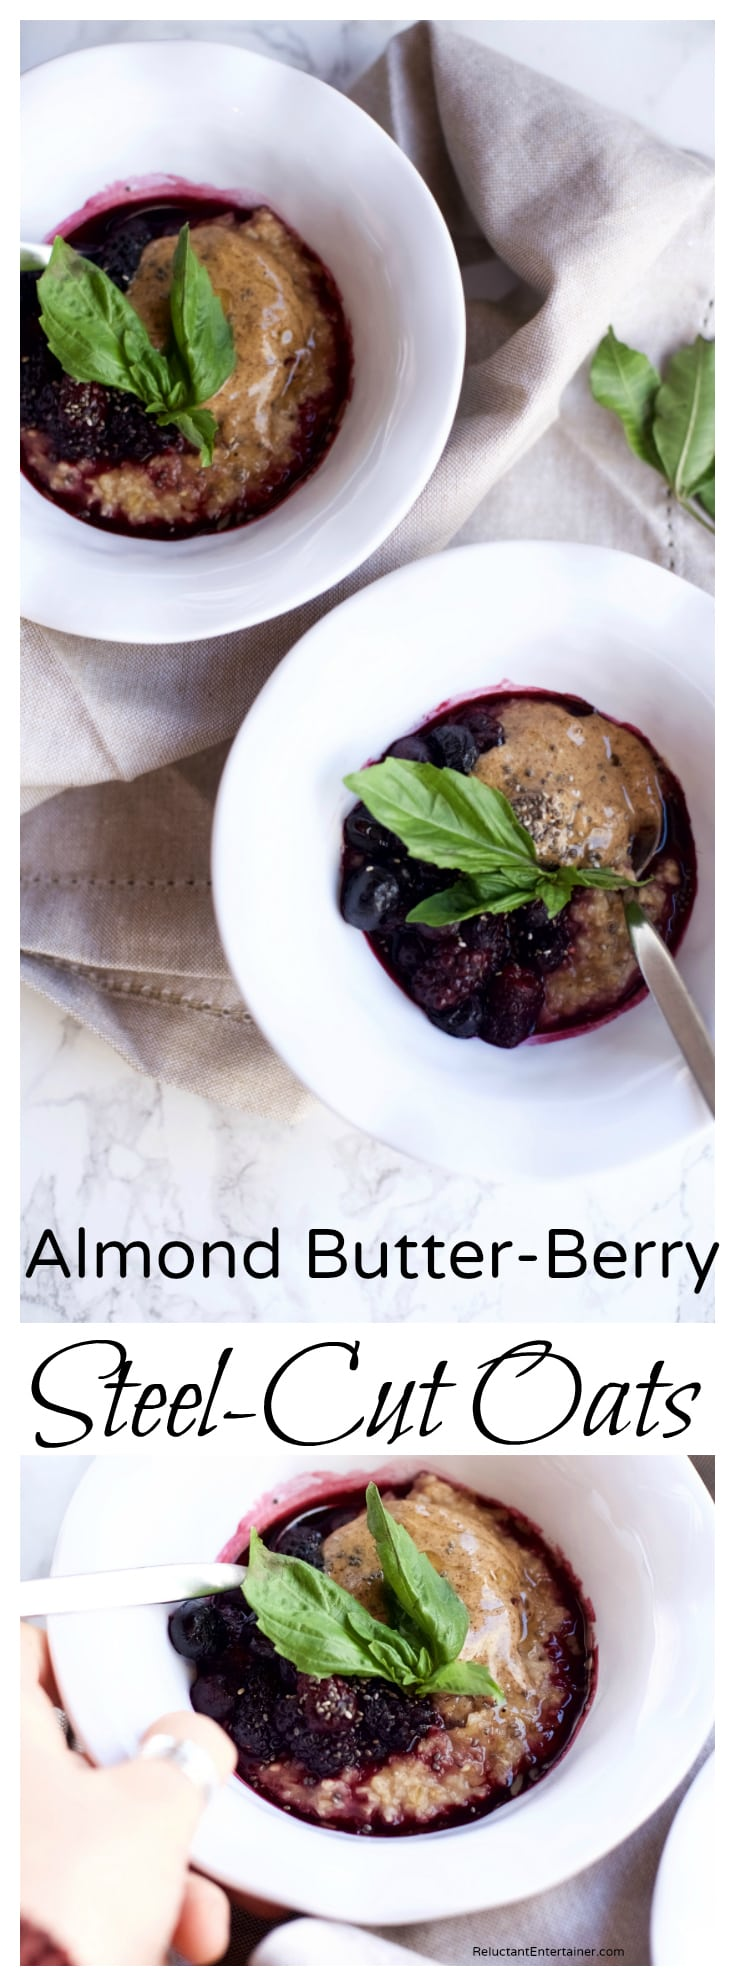 Almond Butter Berry Steel-Cut Oats